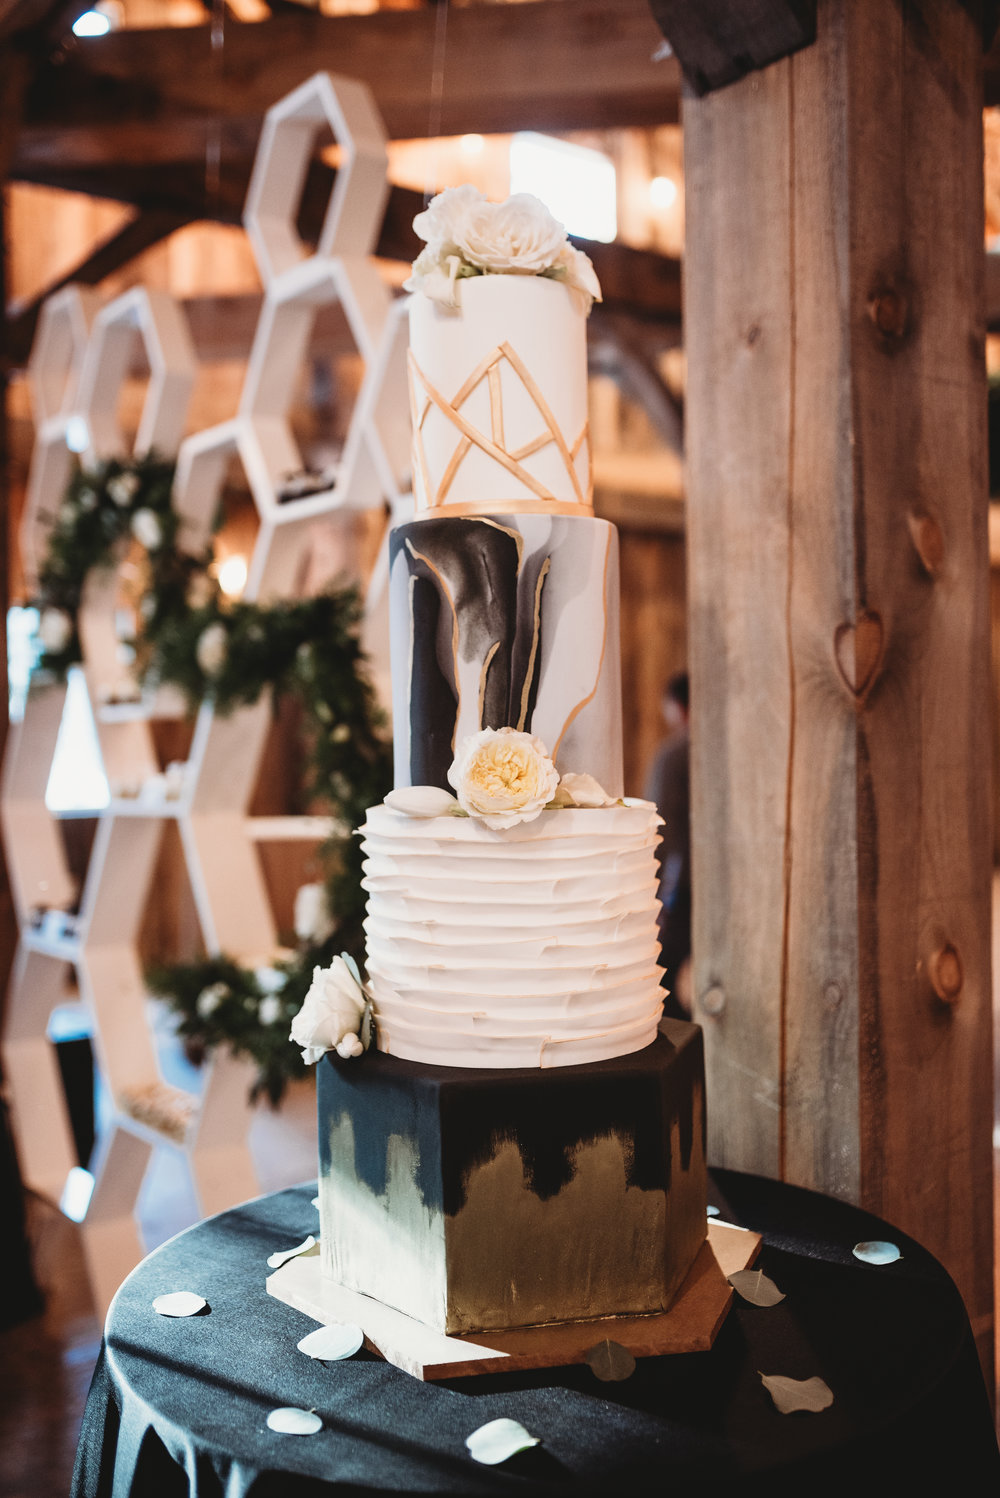 Montview Bakery (Tara Draper Photography)